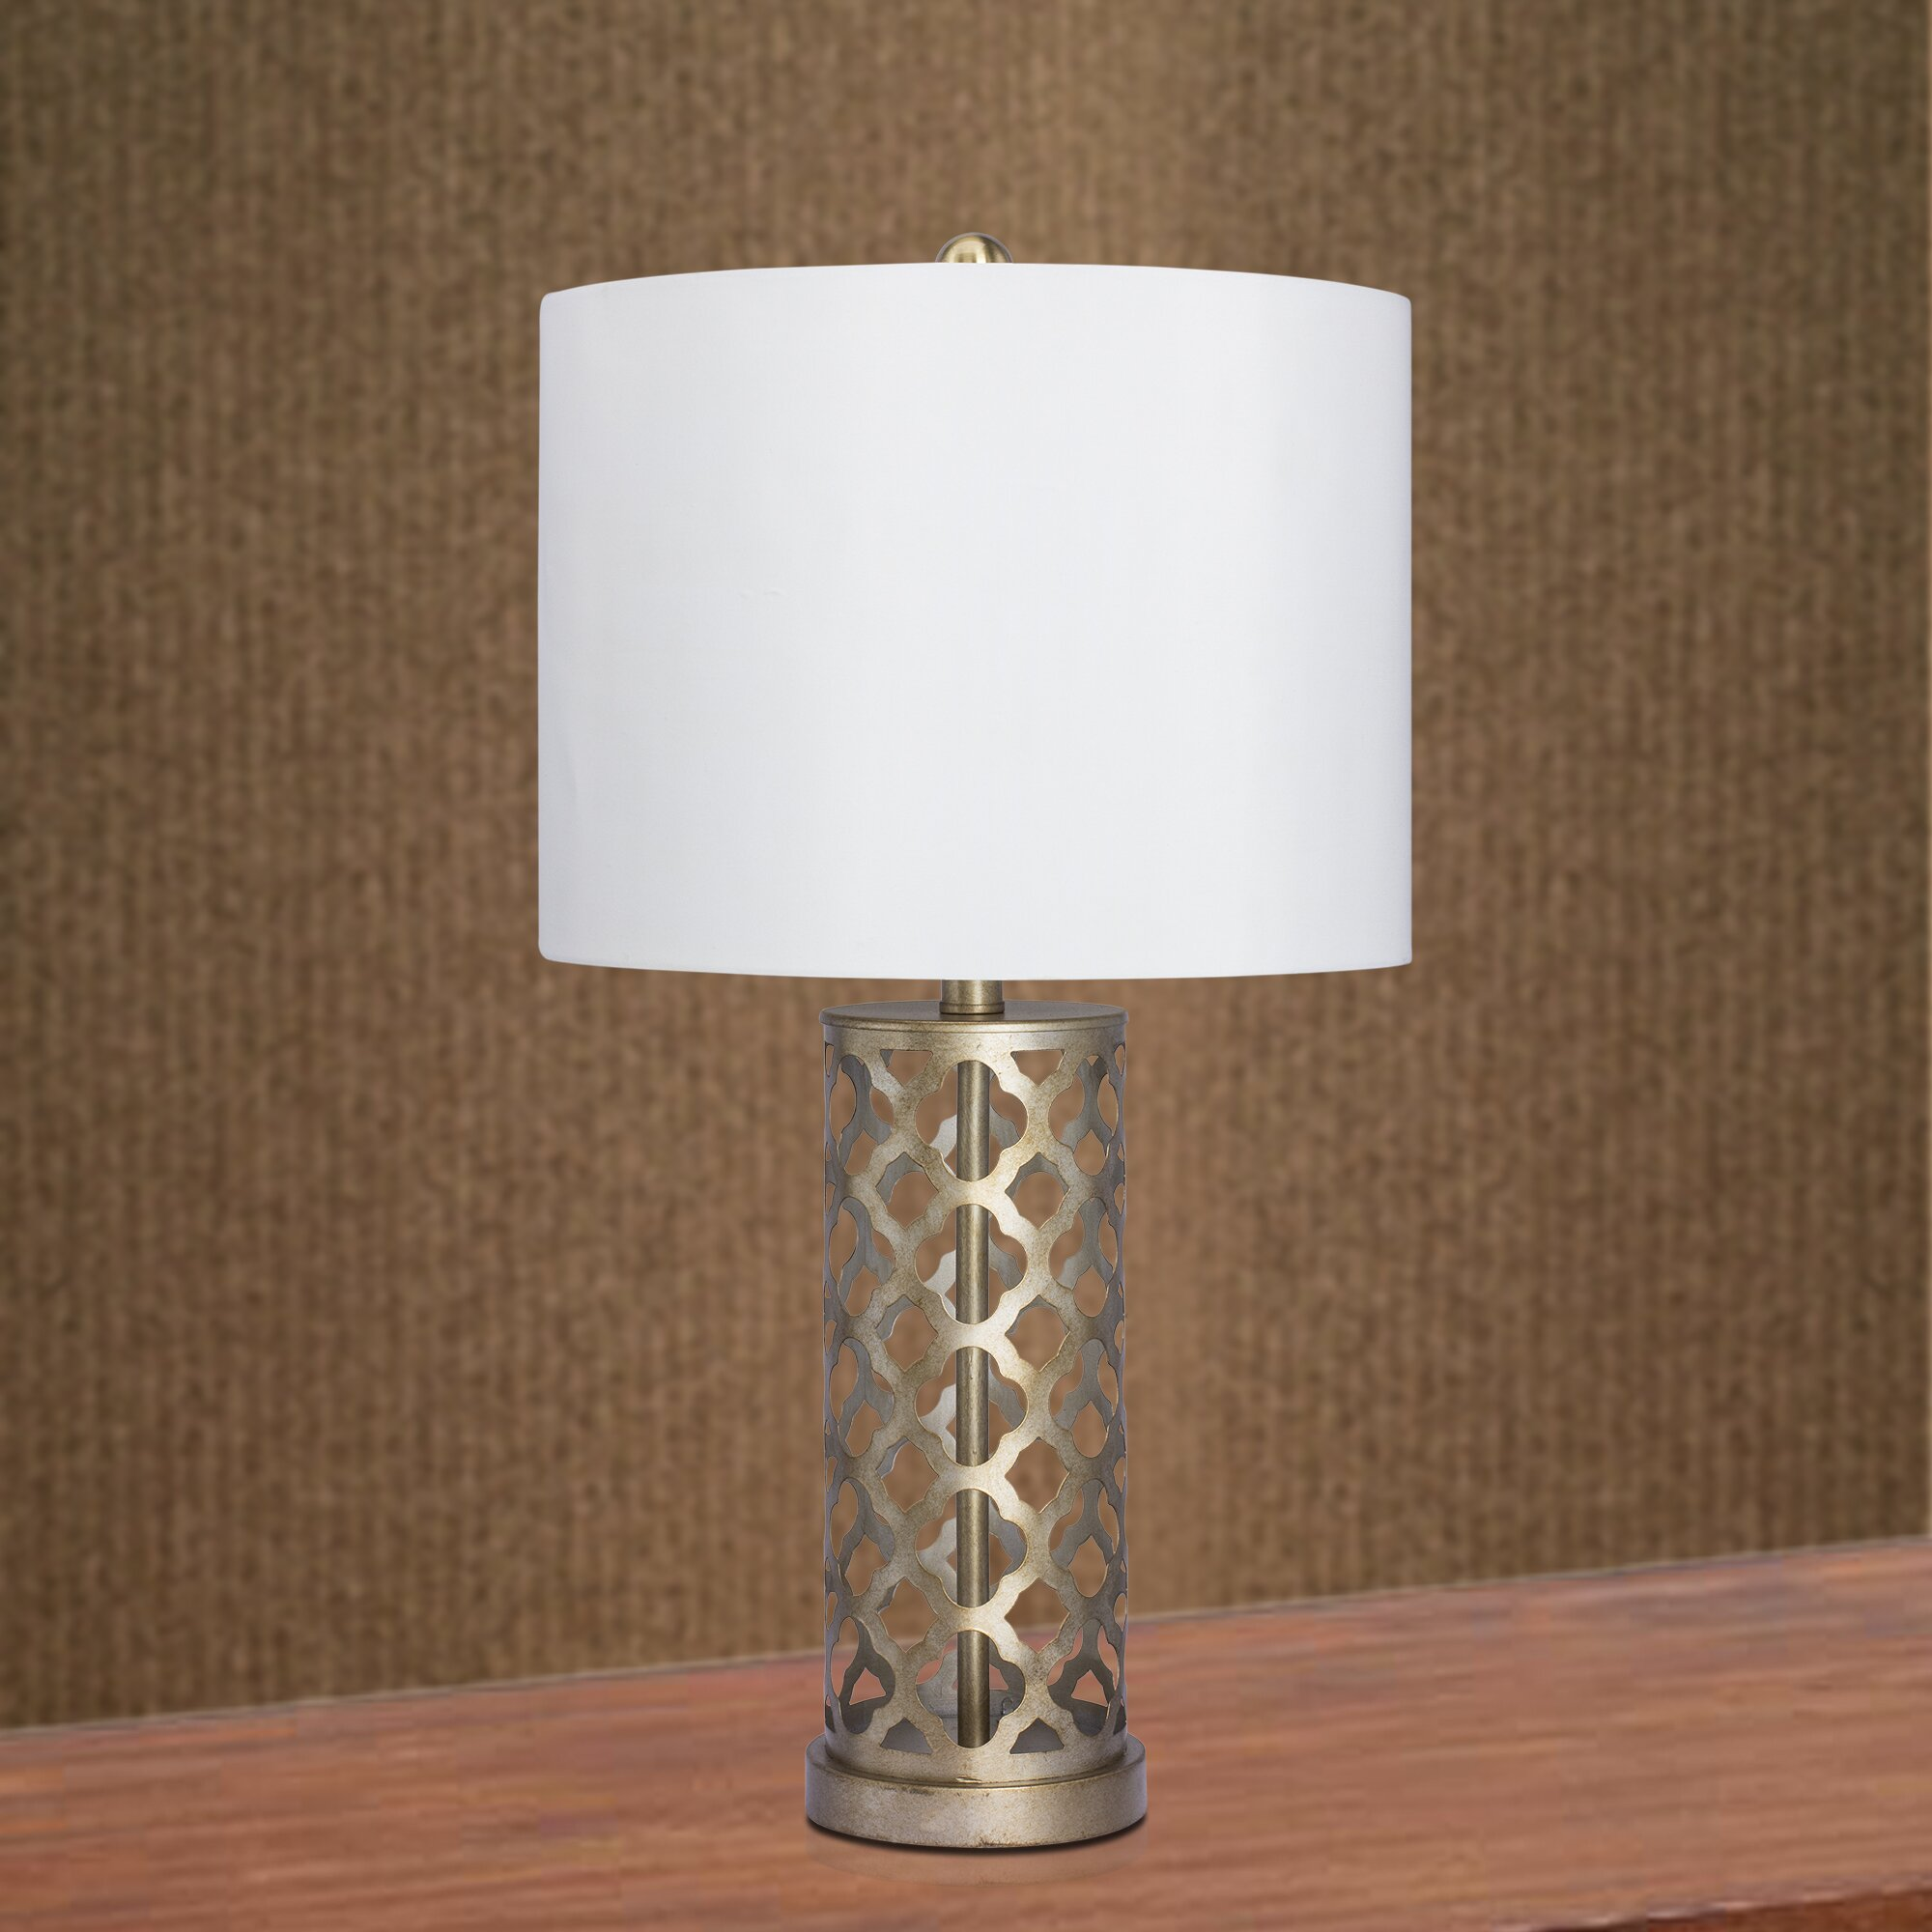 Metal Table Lamps Crowdbuild For